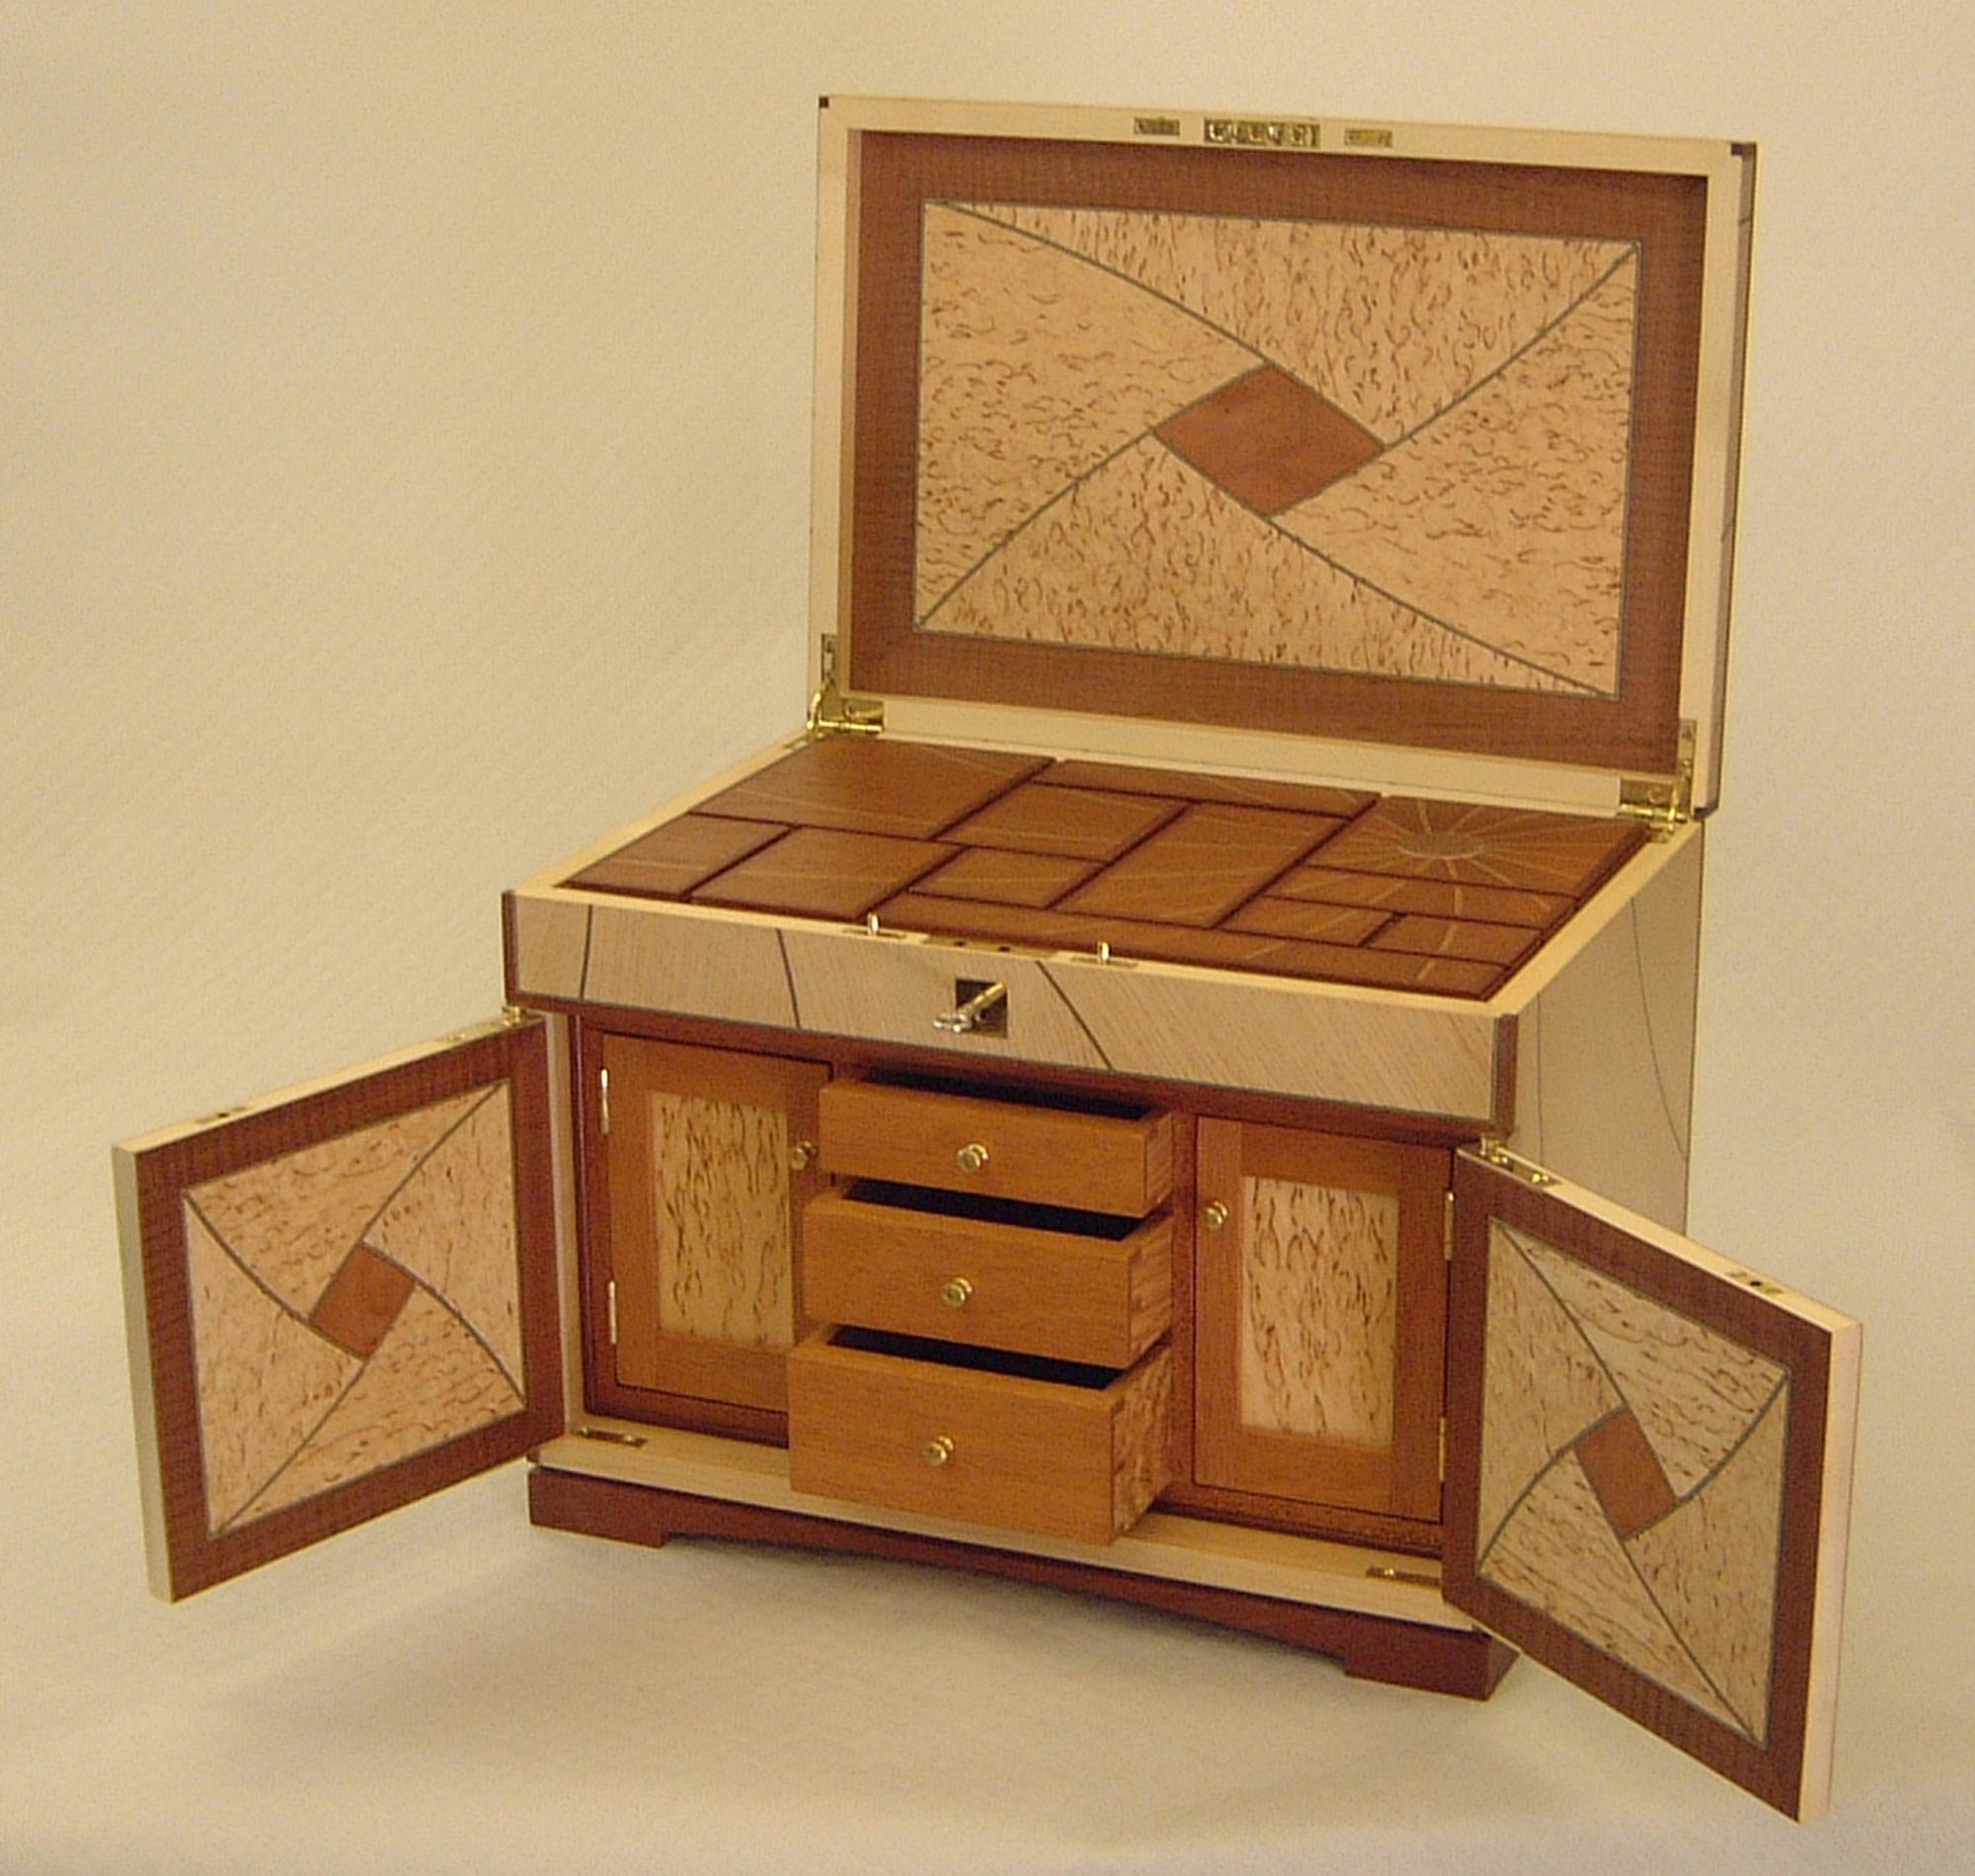 Bench design hidden compartment jewelry box plans for Furniture w hidden compartments